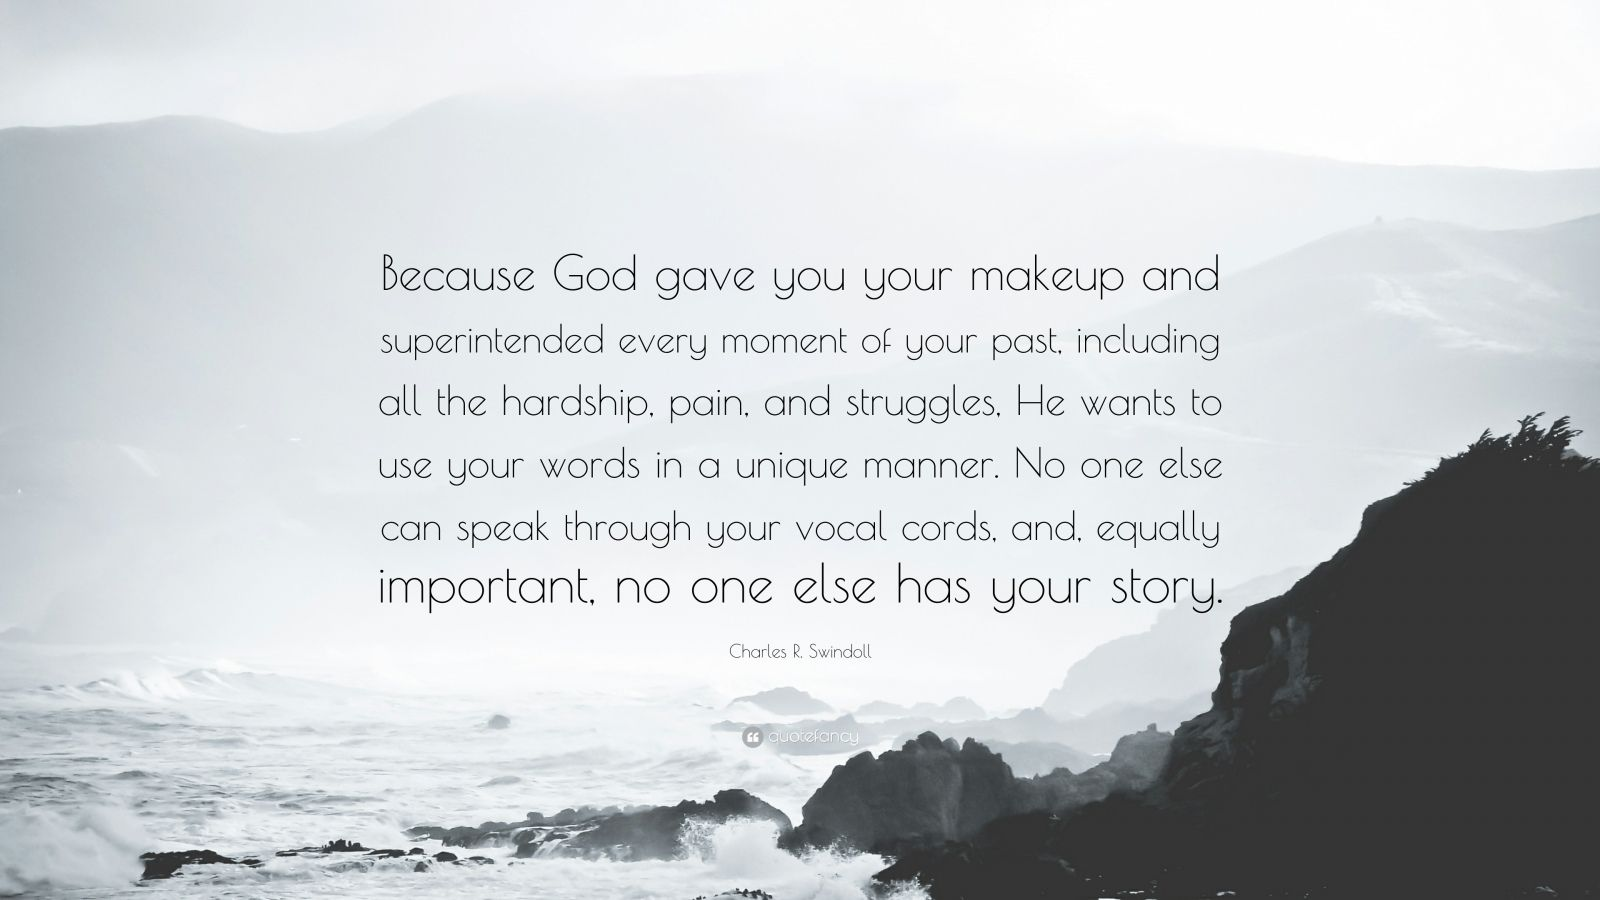 "Charles R. Swindoll Quote: ""Because God gave you your makeup and superintended every moment of your past, including all the hardship, pain, and struggles, He wants to use your words in a unique manner. No one else can speak through your vocal cords, and, equally important, no one else has your story."""